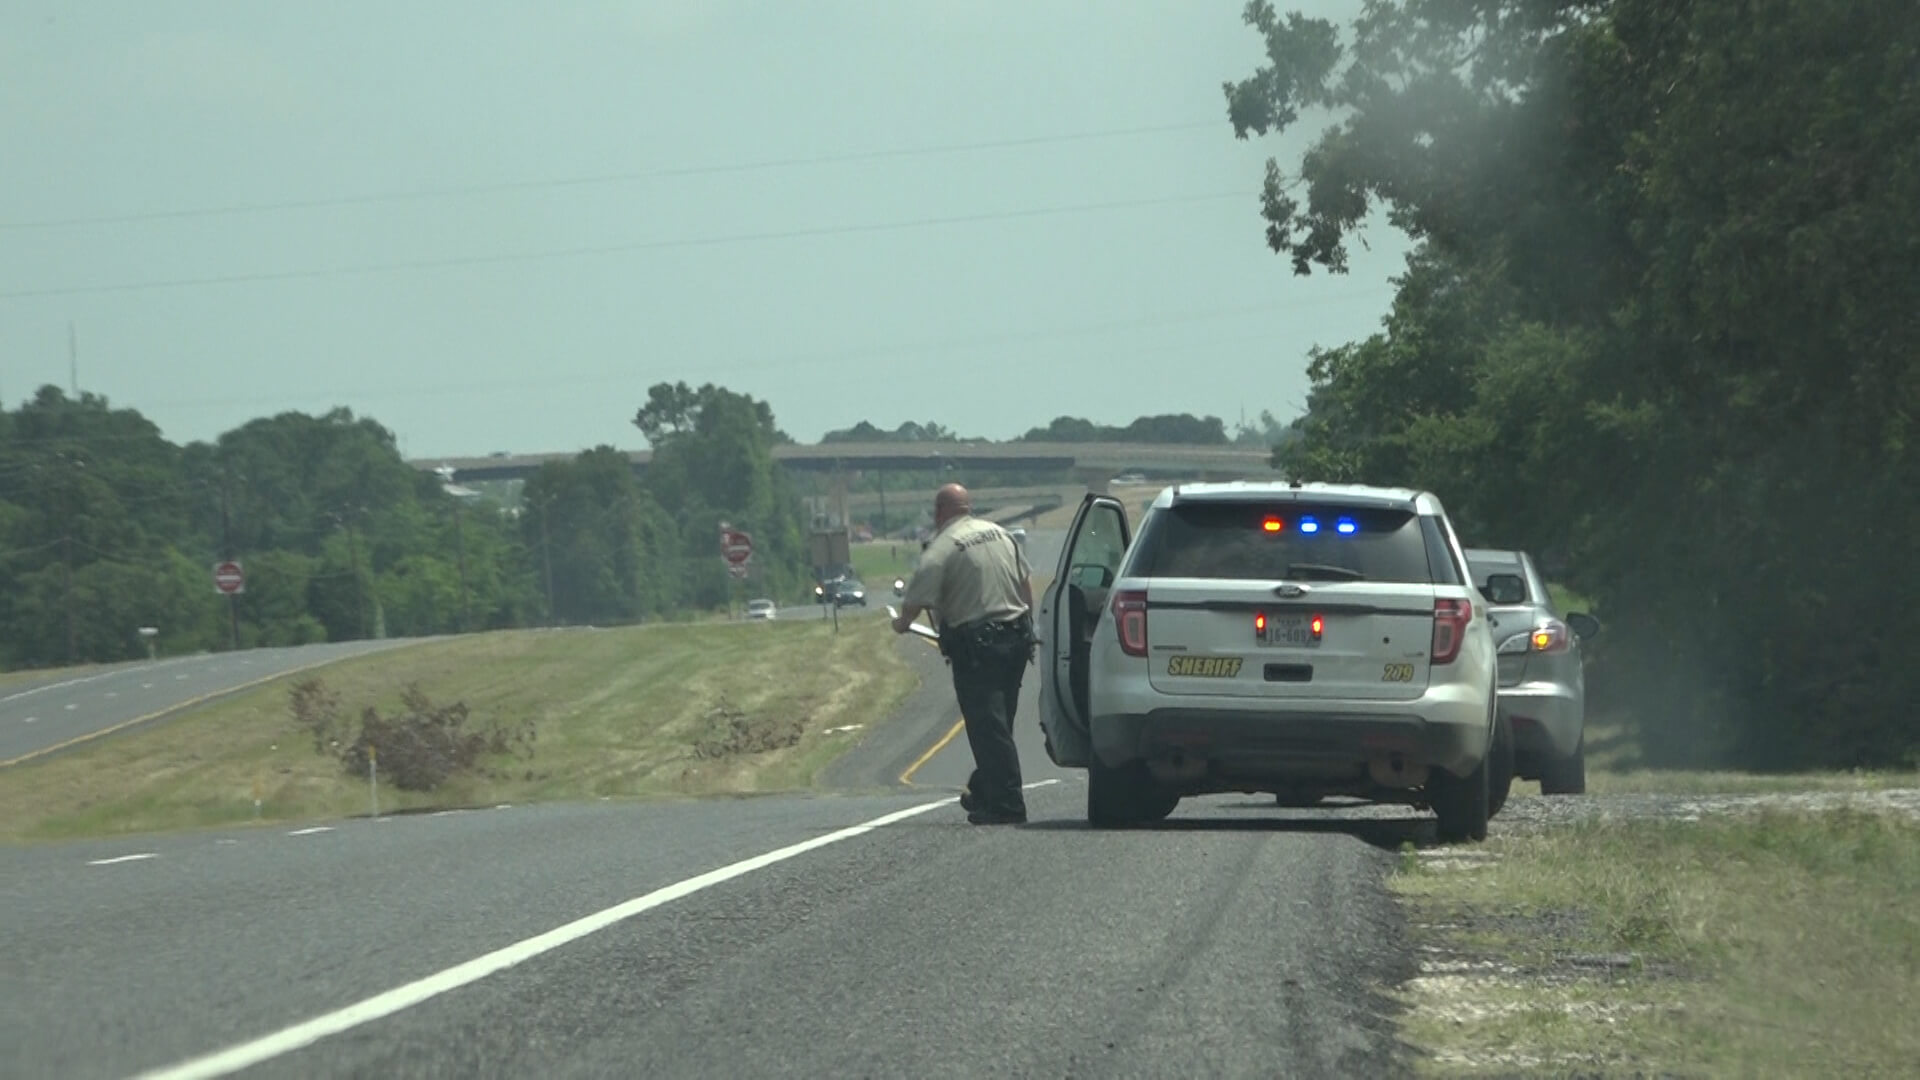 LAW ENFORCEMENT TACKLE SLOW DOWN MOVE OVER LAW BREAKERS